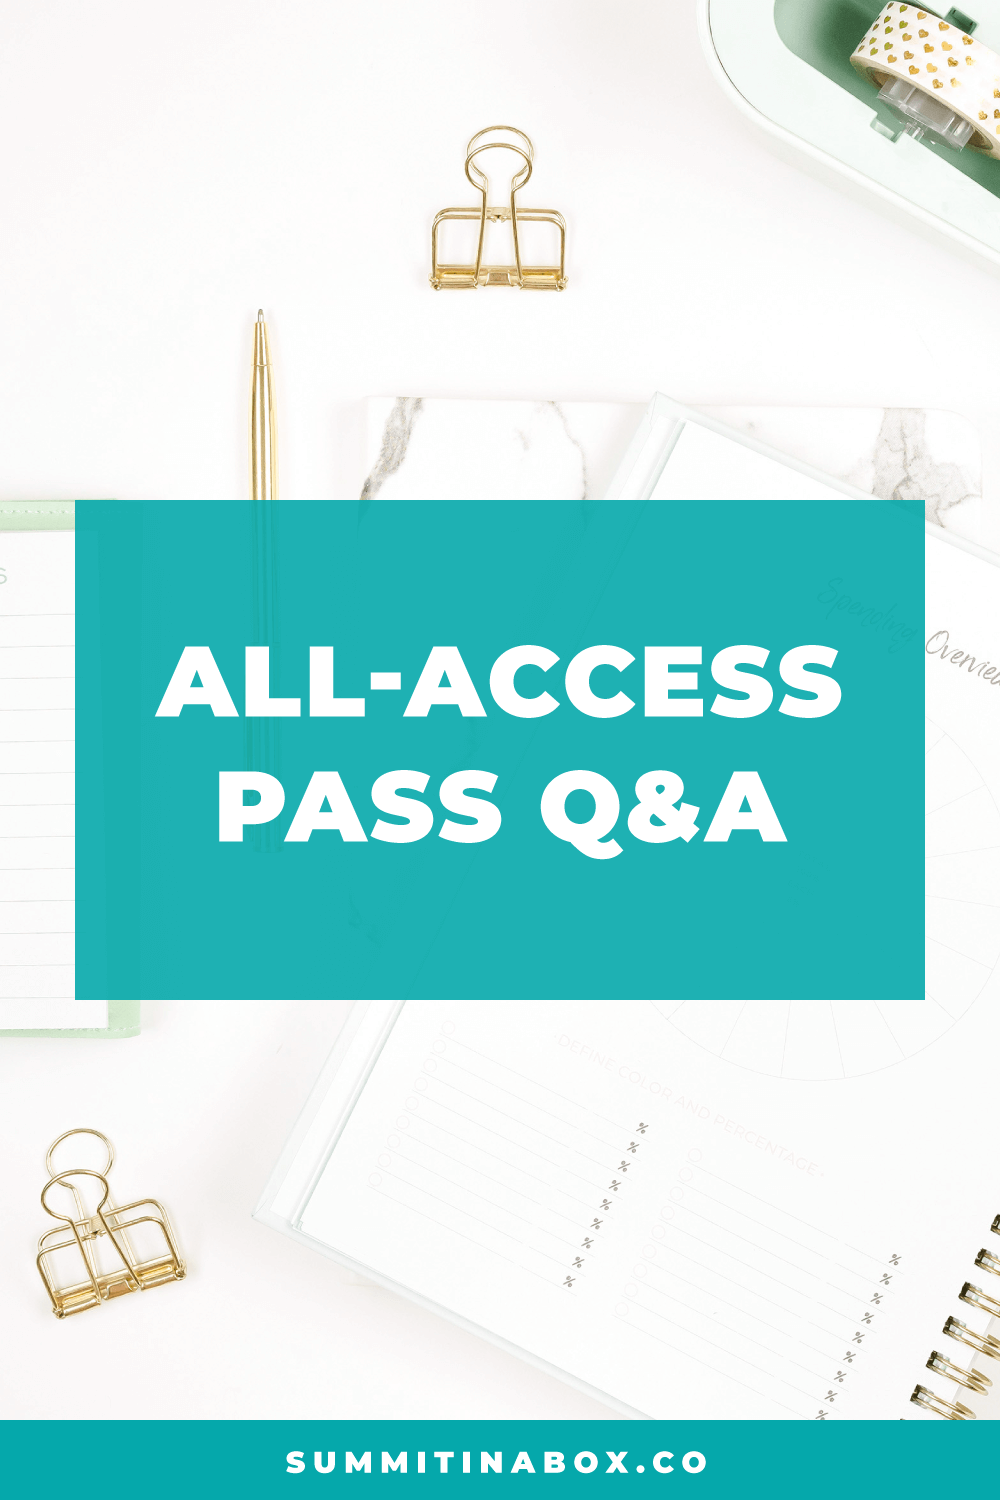 Selling an all-access pass is a little different than your typical digital product. Let's clear up some confusion with a rapid-fire Q&A covering common questions.